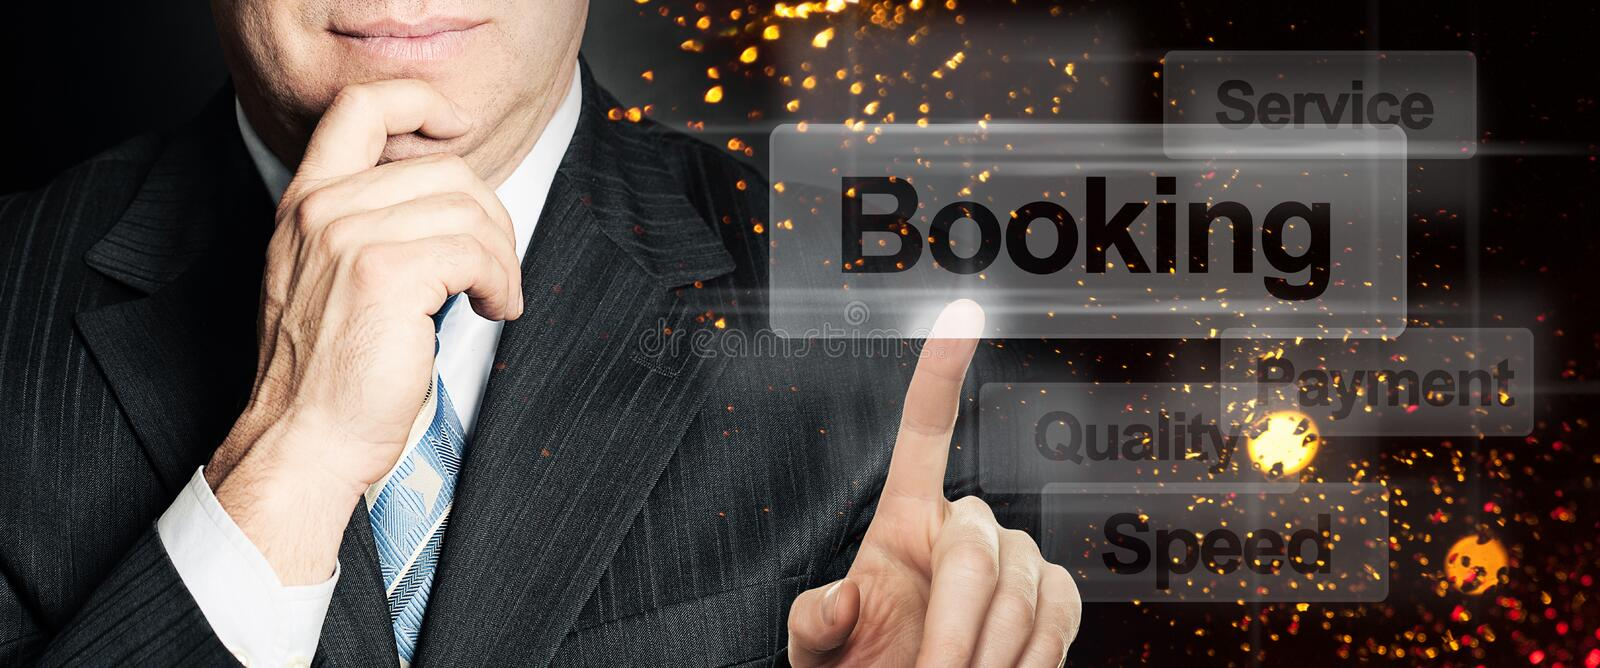 Businessman chooses Booking, modern business background concept royalty free stock photo